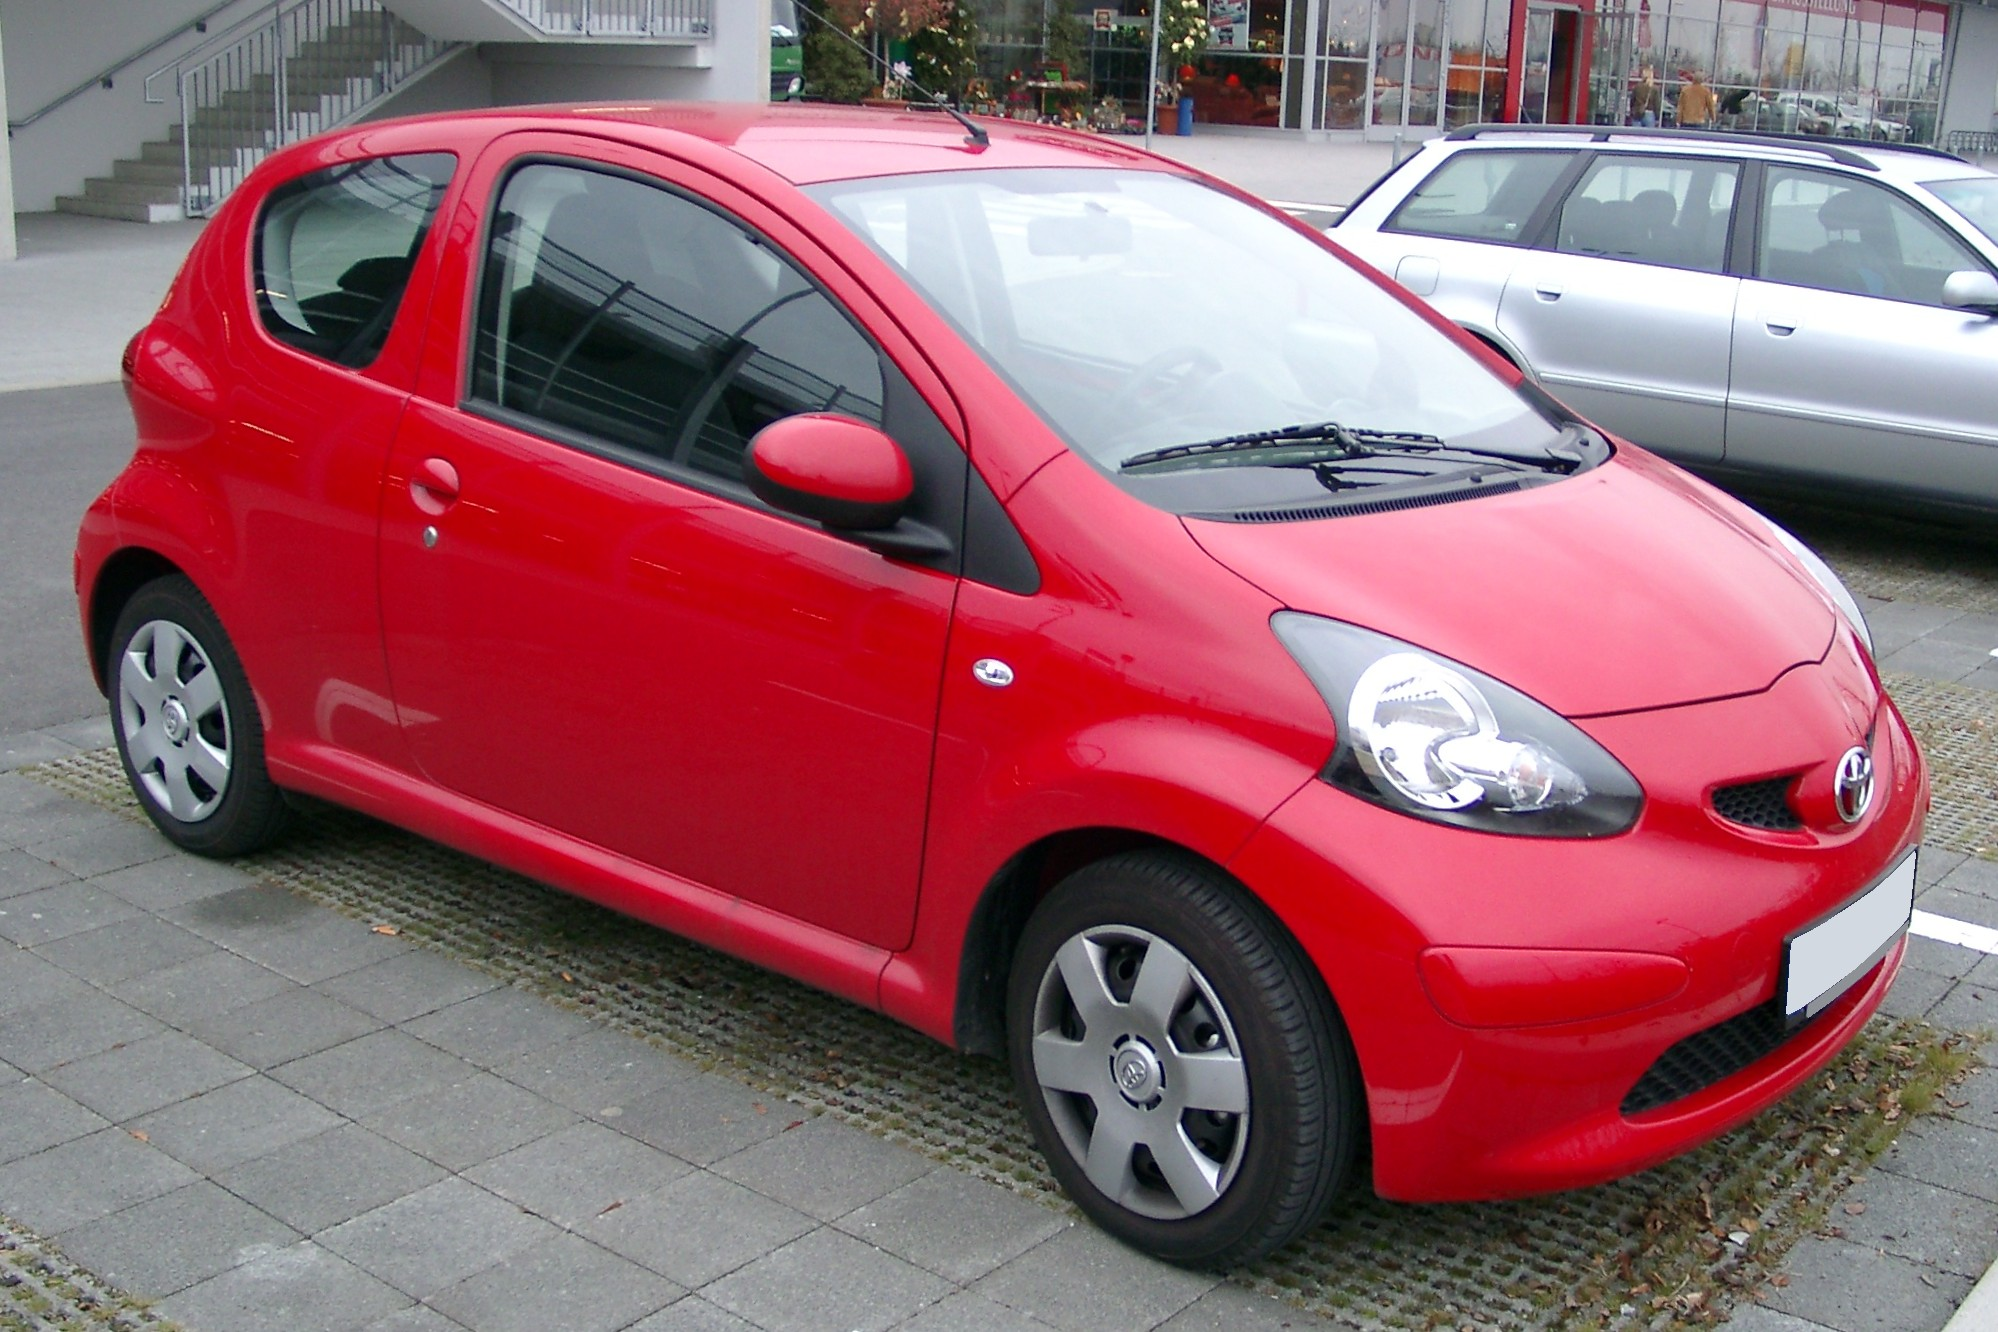 Toyota Yaris Car Insurance Cost For First Time Driver